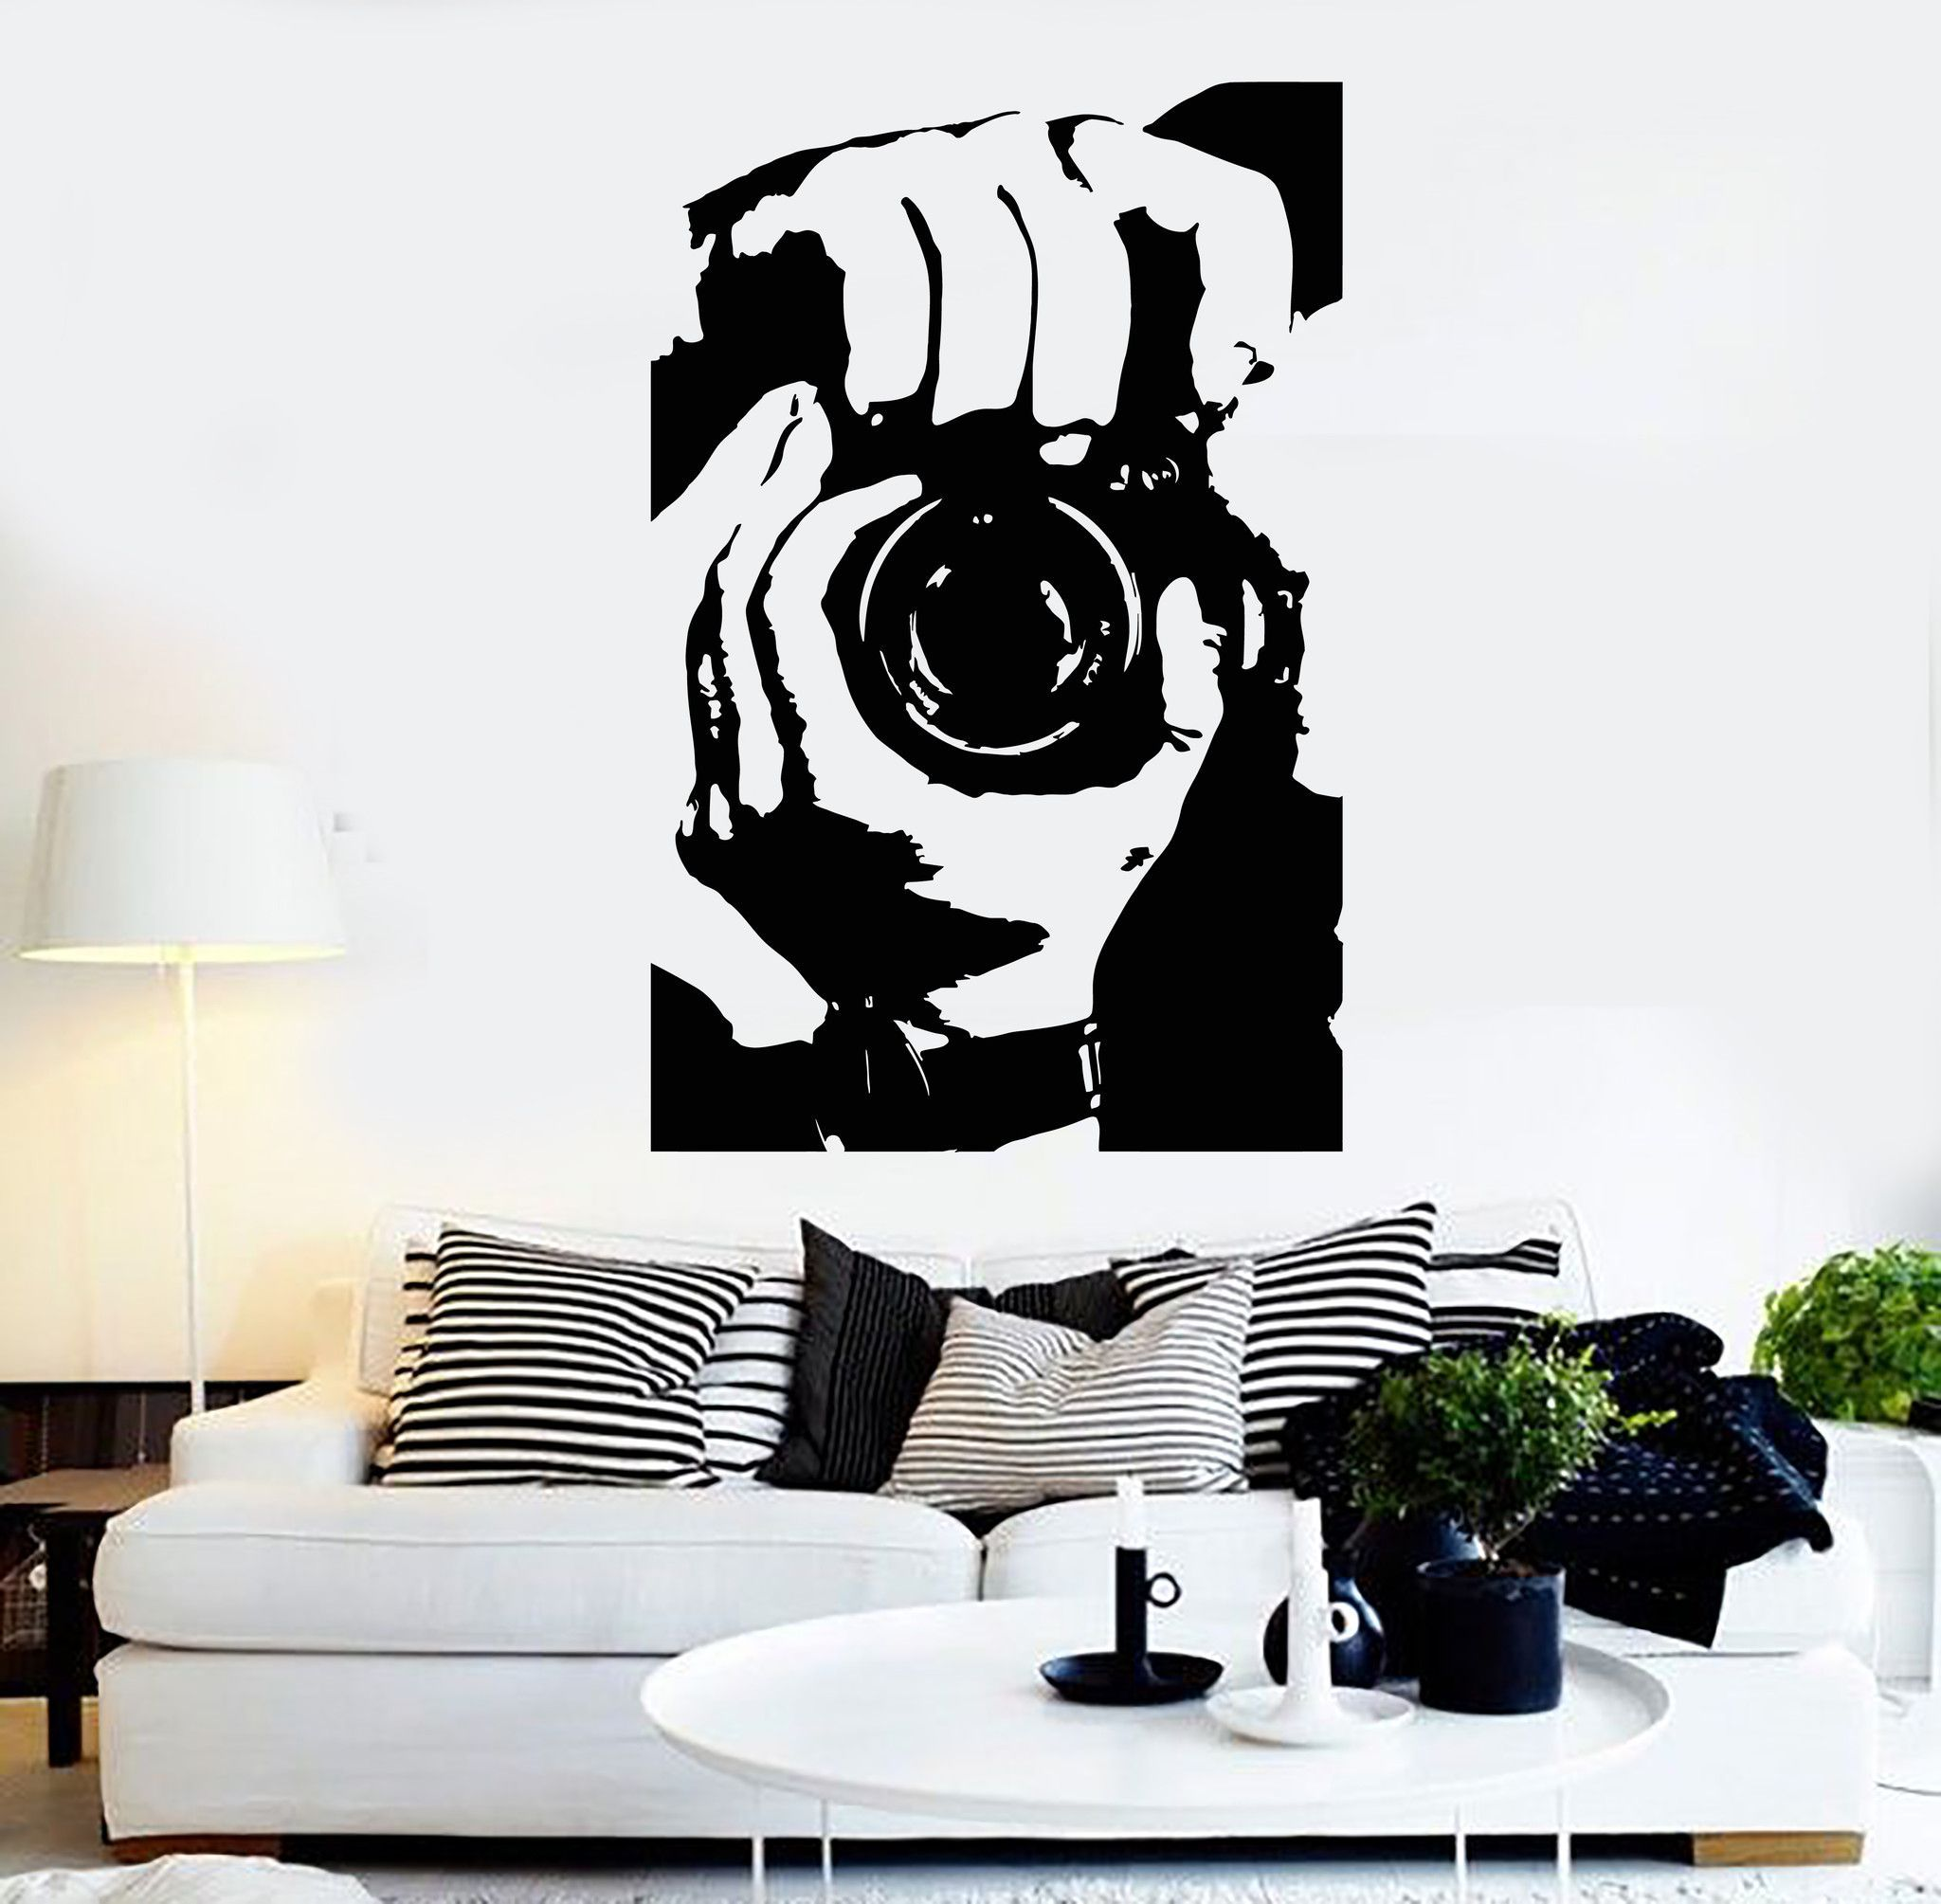 Vinyl Wall Decal Photographer Photo Studio Camera Stickers Mural Unique Gift Ig4651 Graffiti Wall Art Vinyl Wall Decals Wall Painting